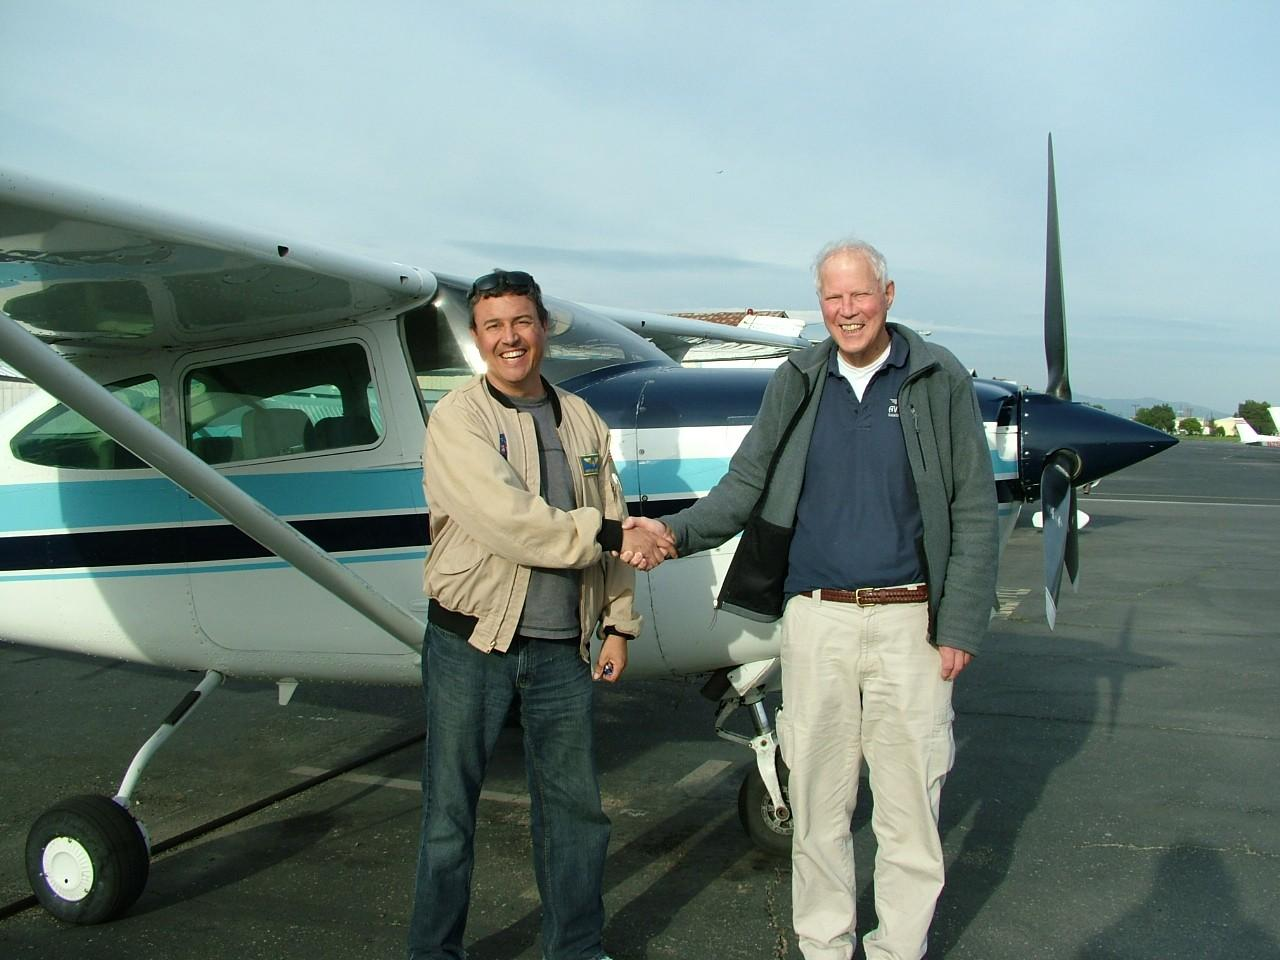 Certified Flight Instructor - Hernan Posada